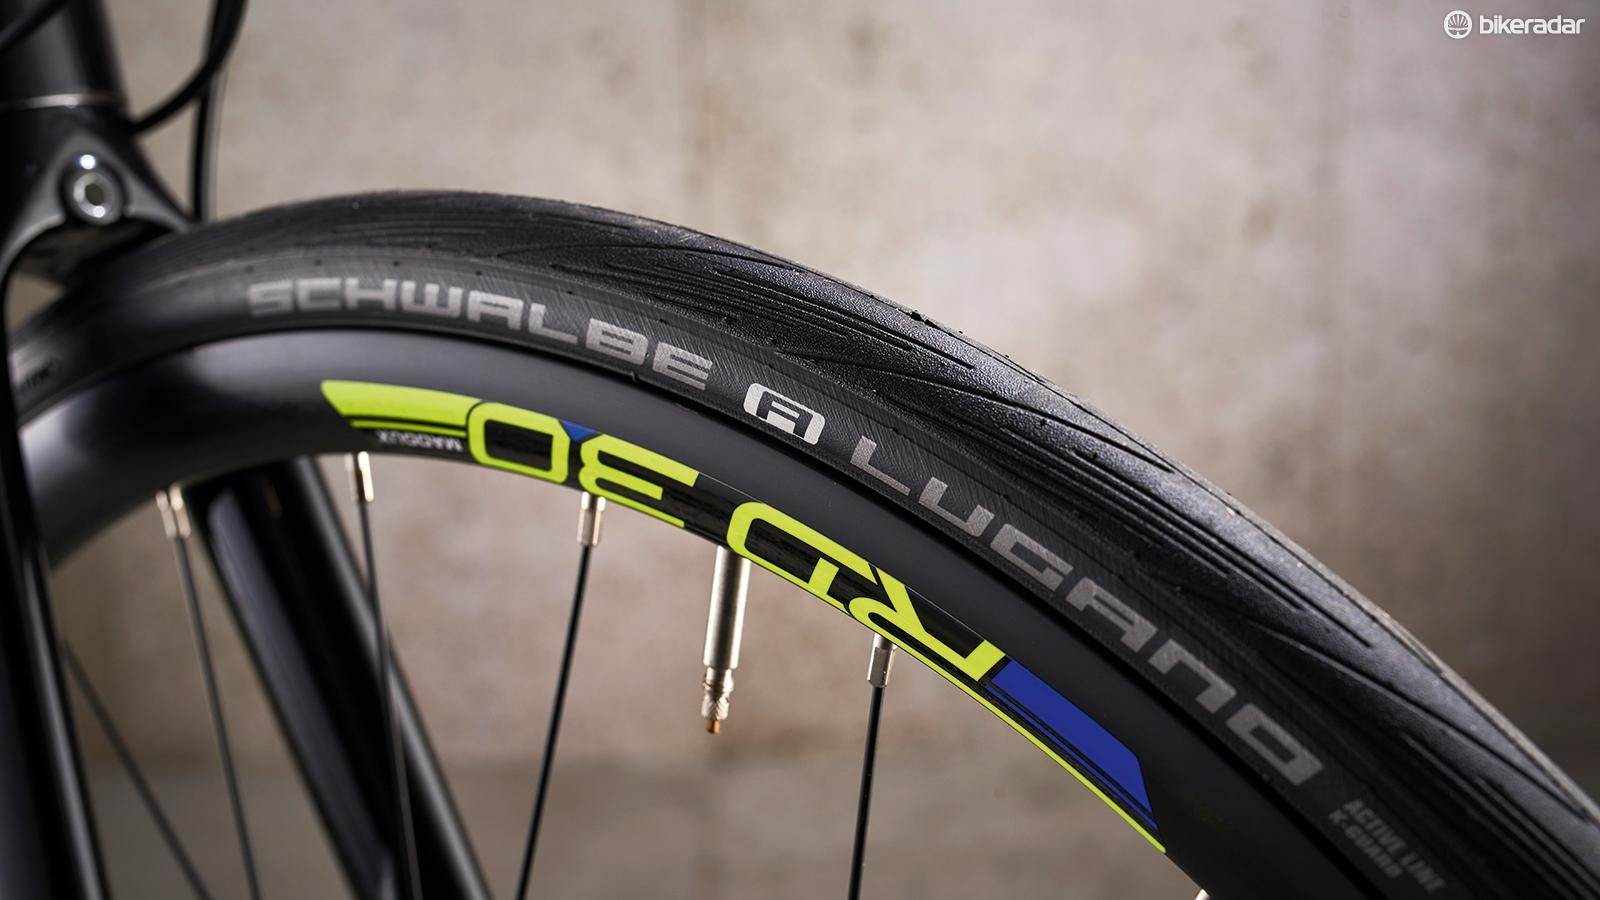 RD30 wheels are wrapped up in Schwalbe Lugano rubber